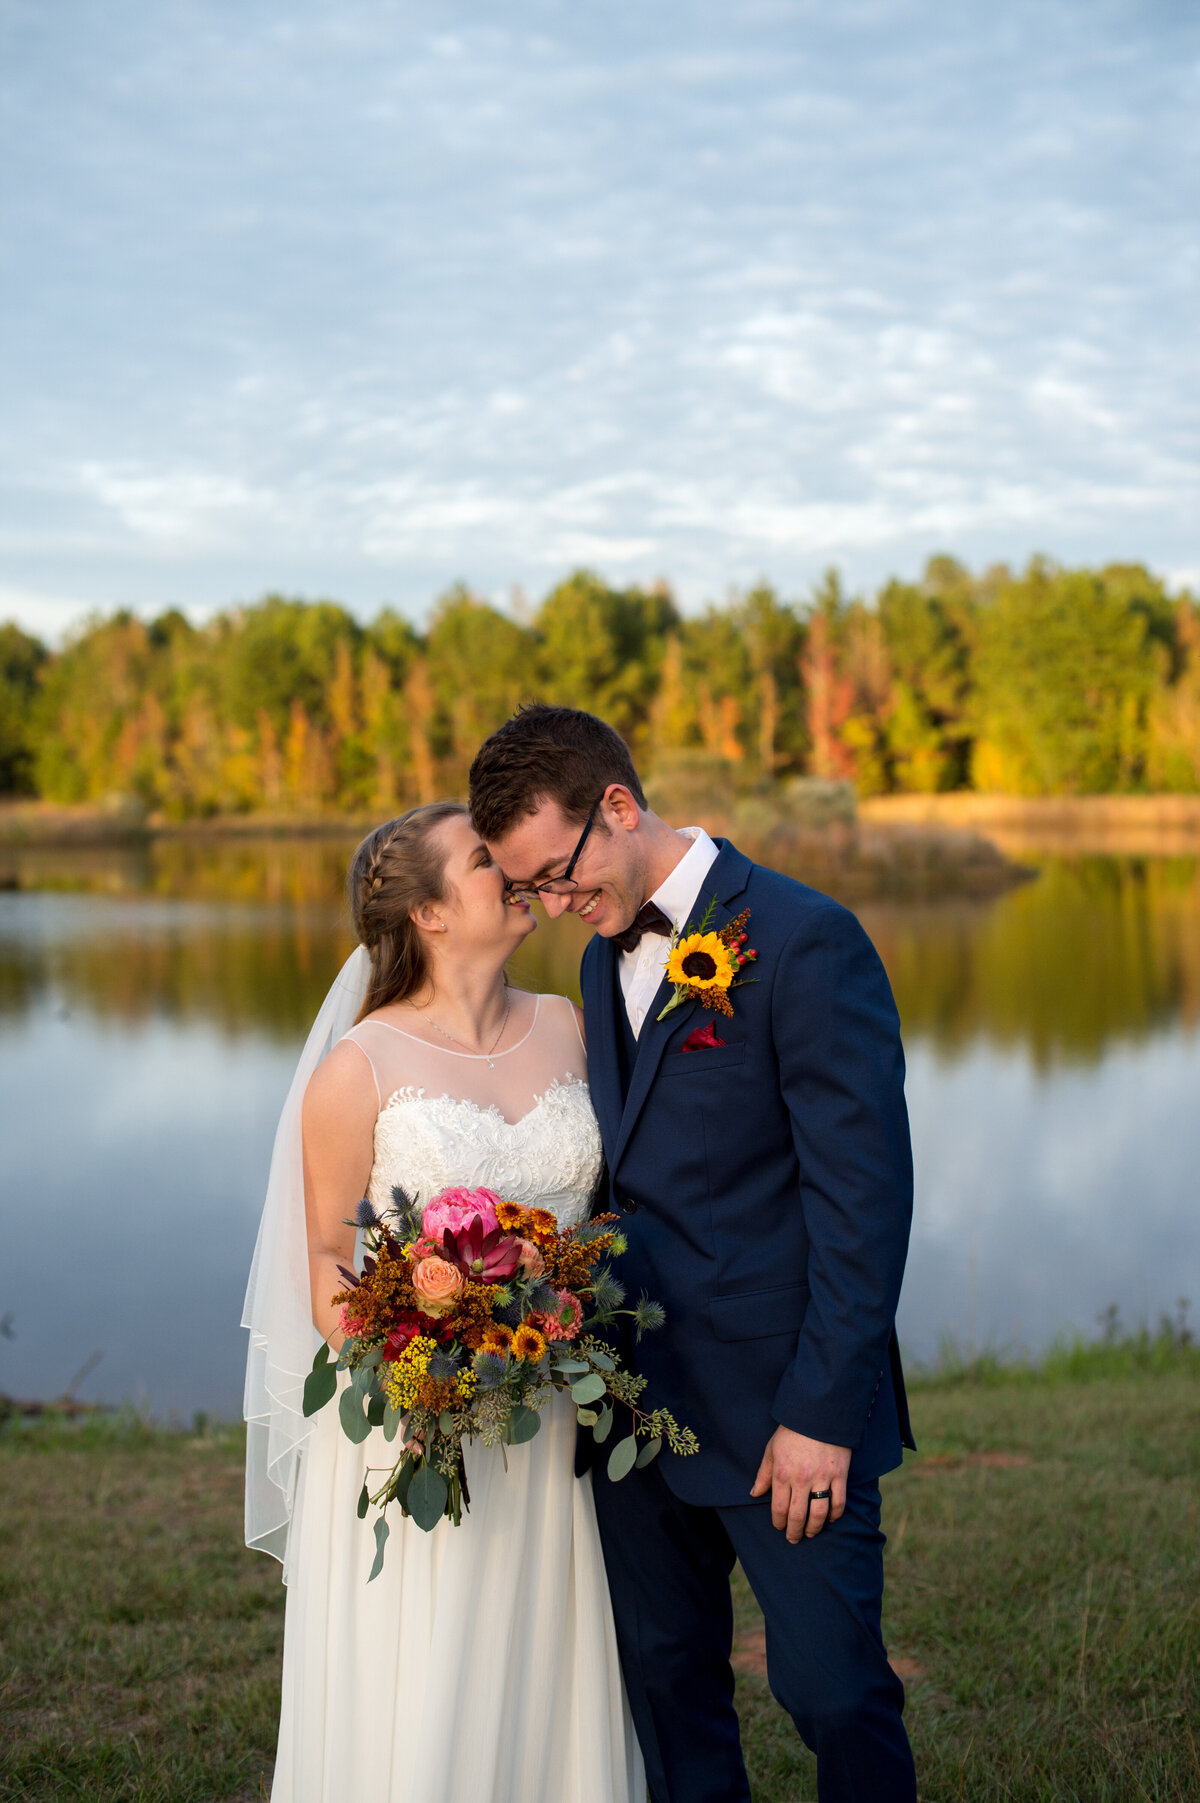 james&meganweddingnov3,2019-2923